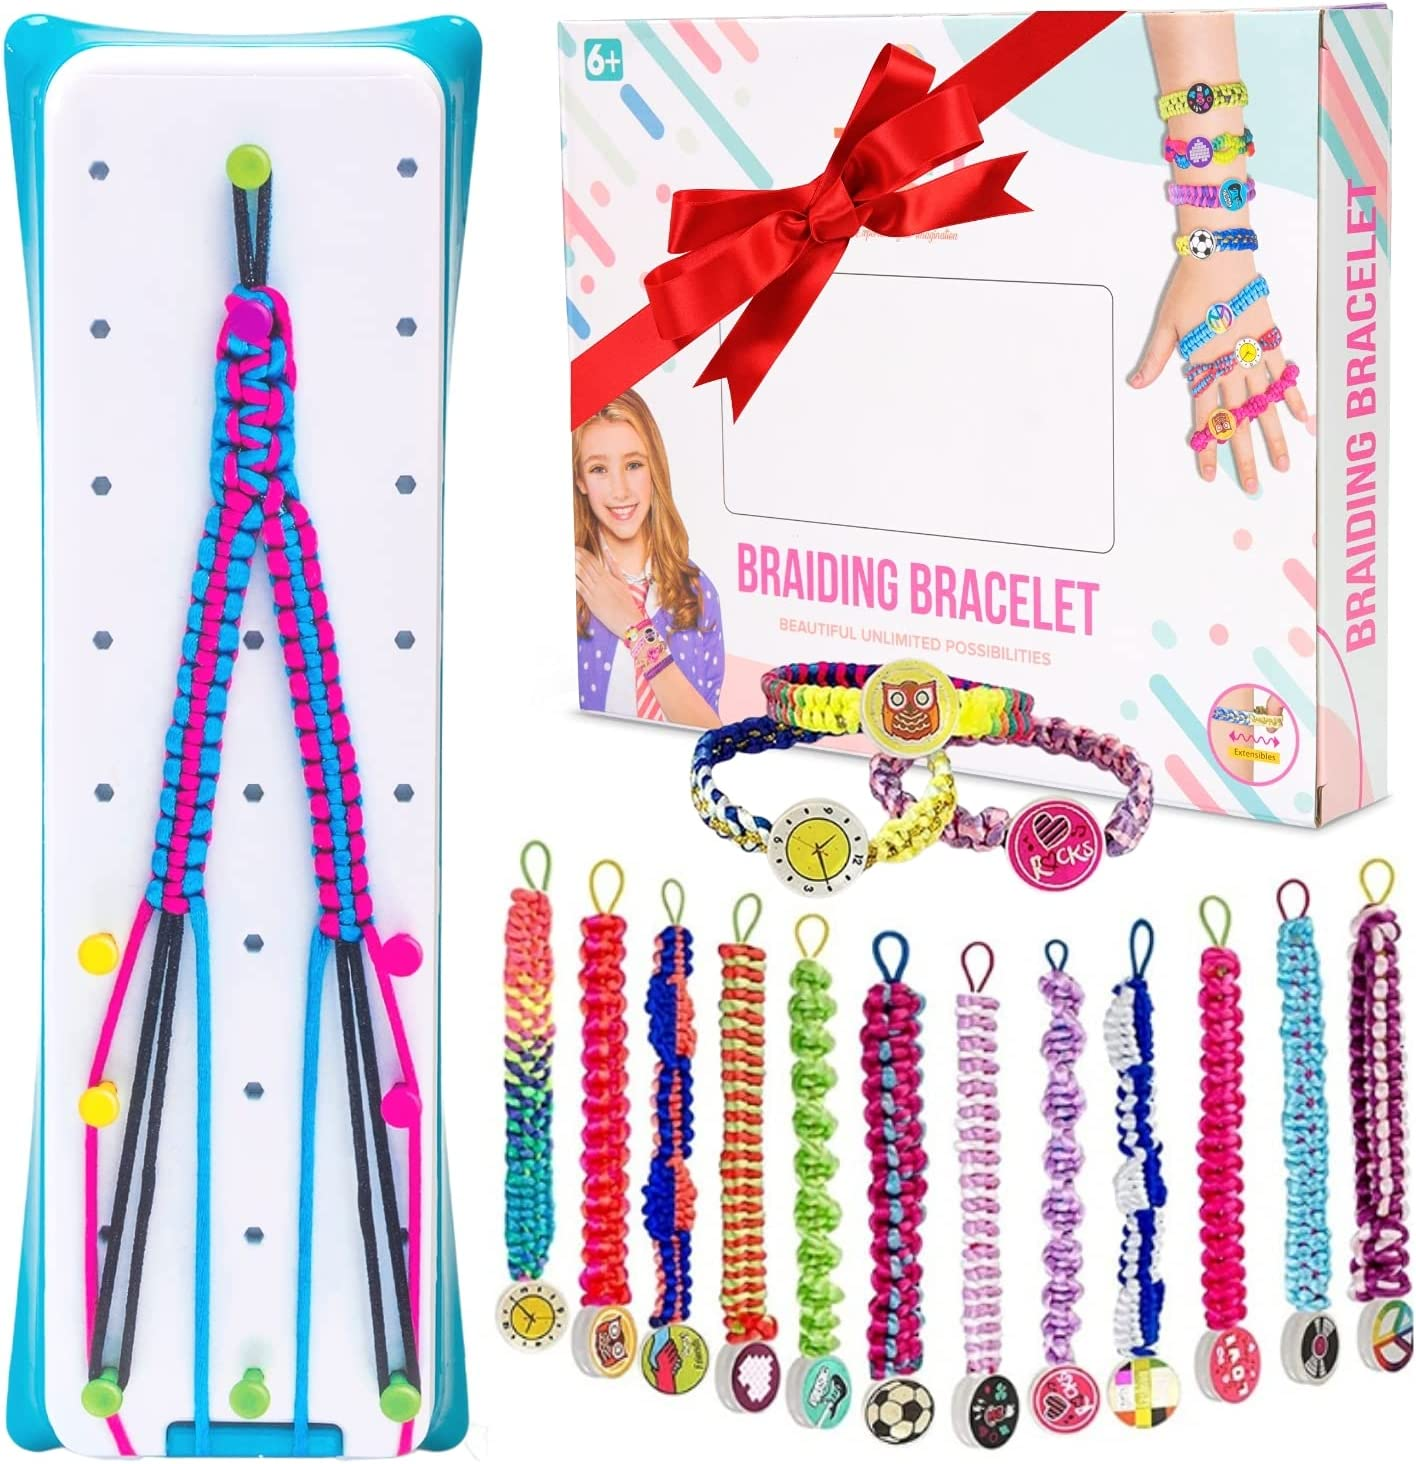 TinyToy Bracelet Making Kit Max 62% OFF Friendship – Girls Year-end annual account for